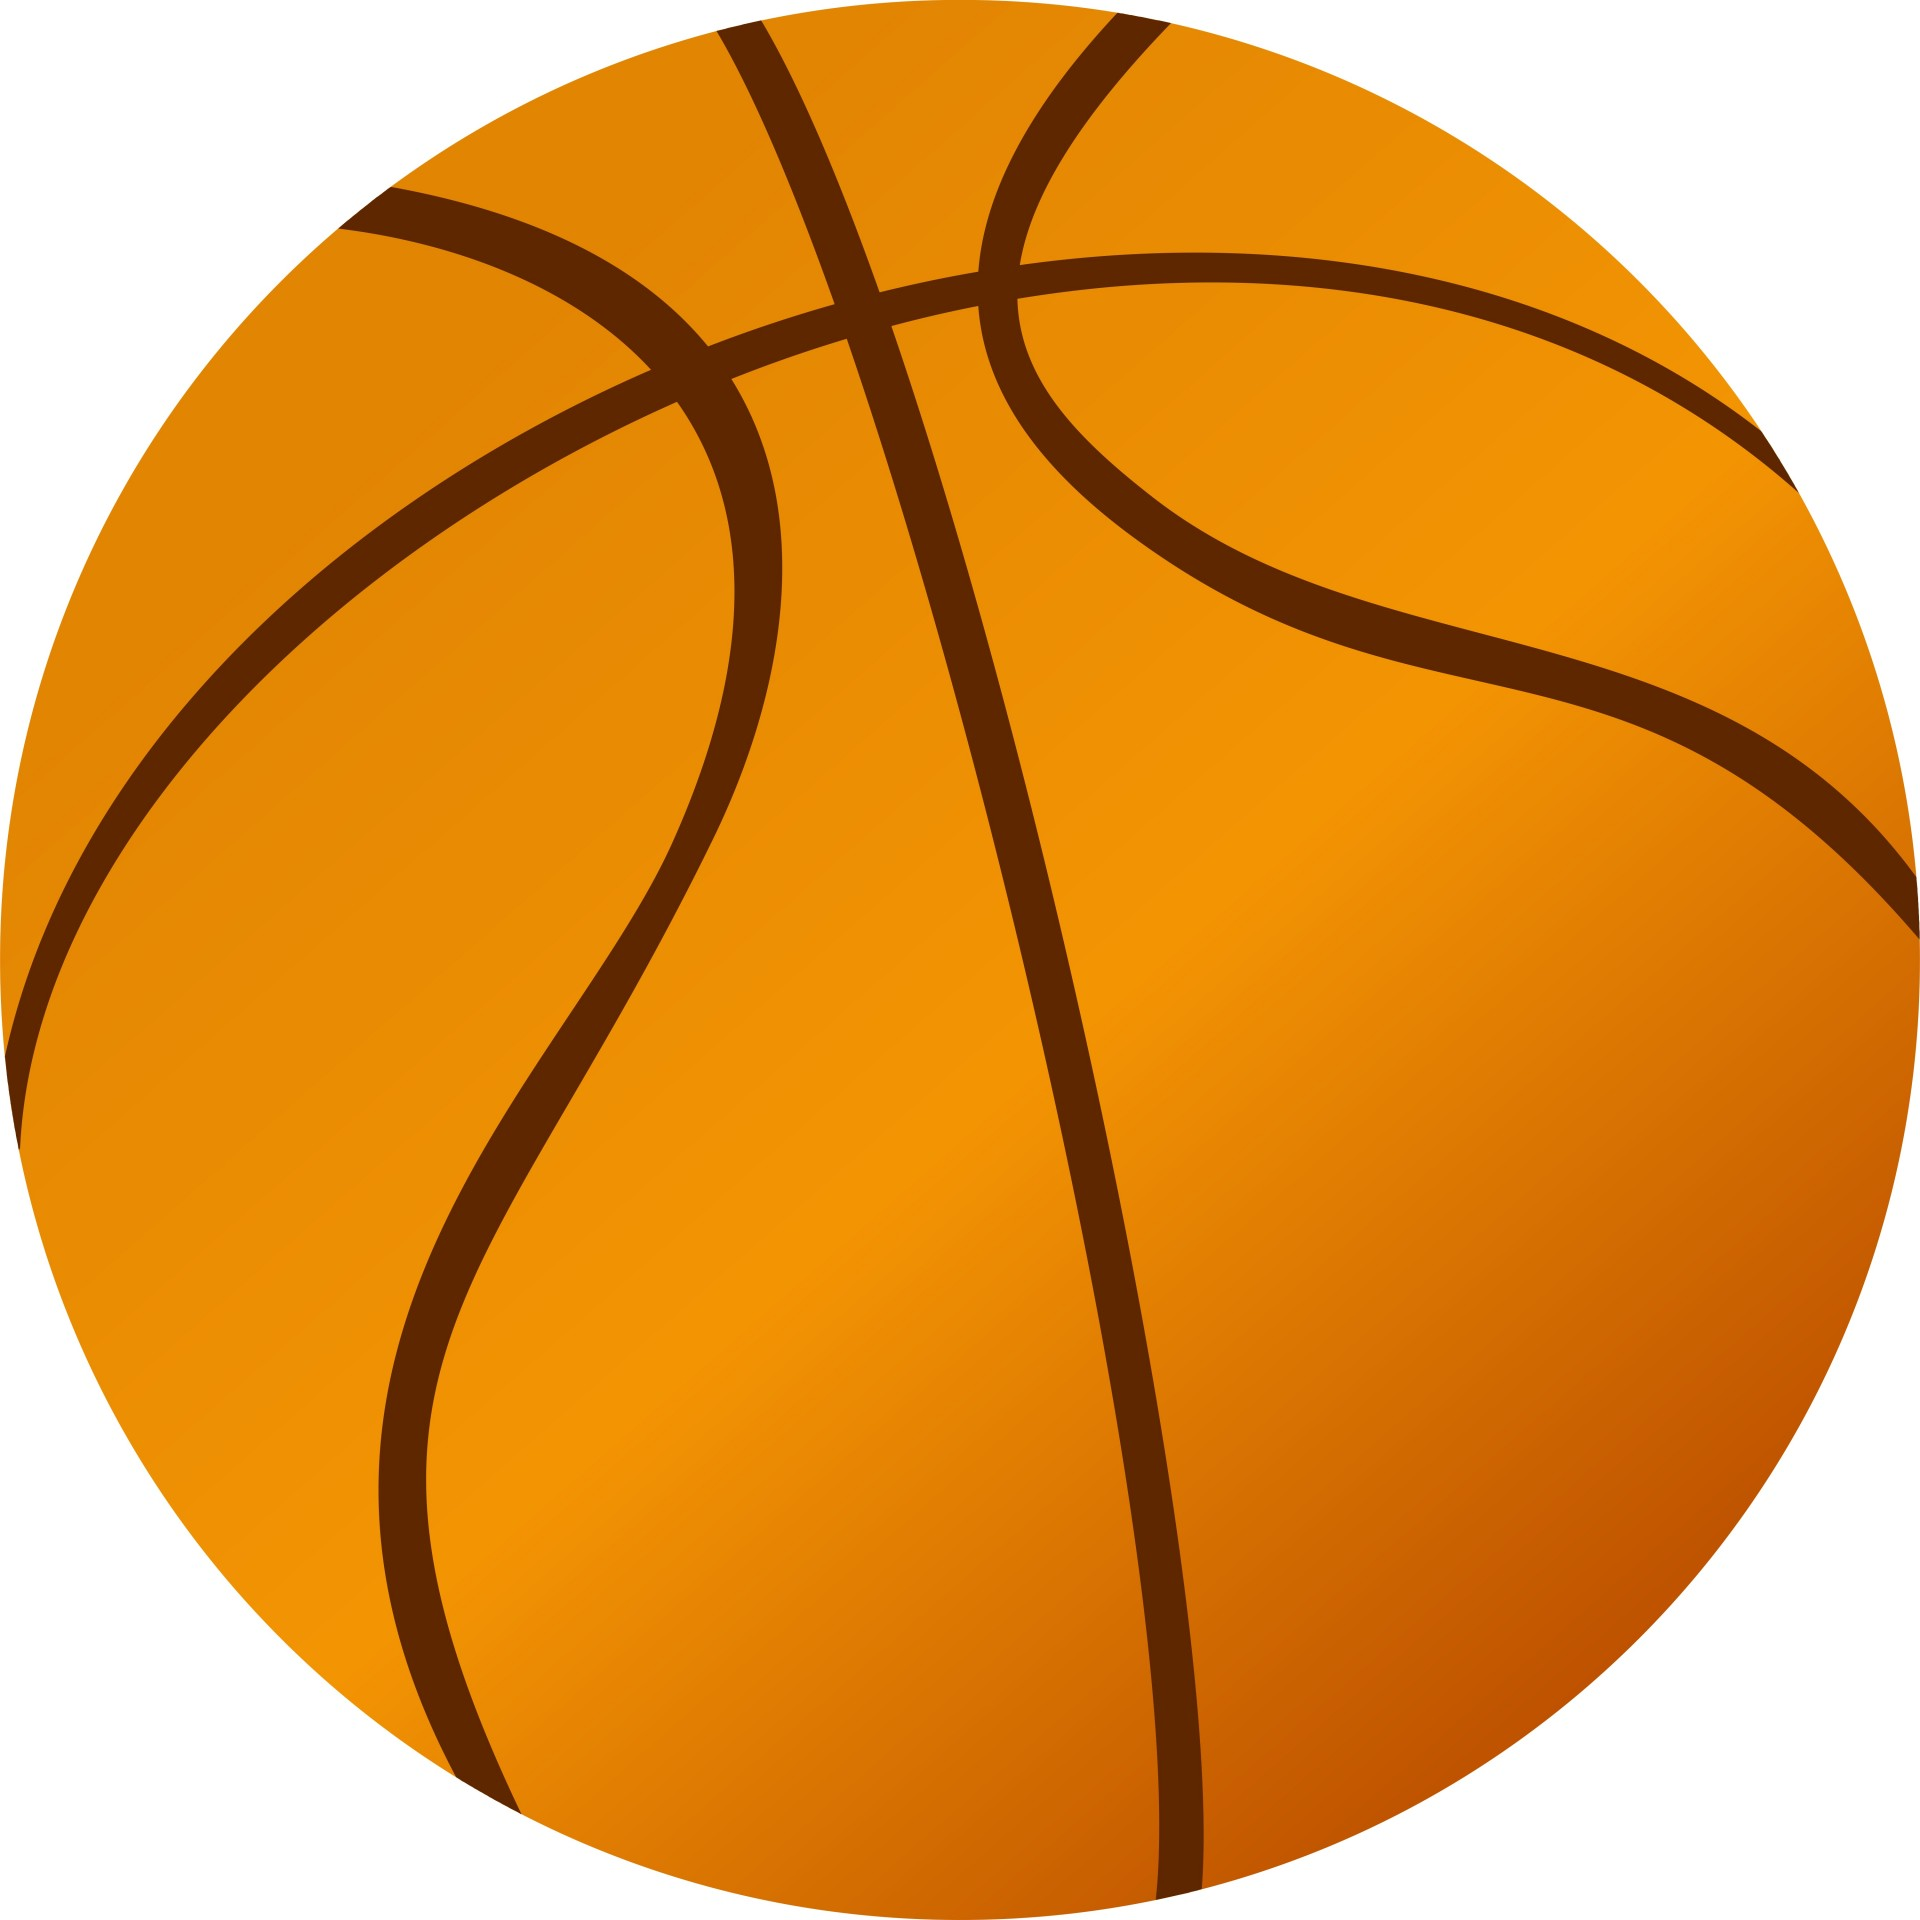 1920x1920 Basketball Ball Free Stock Photo